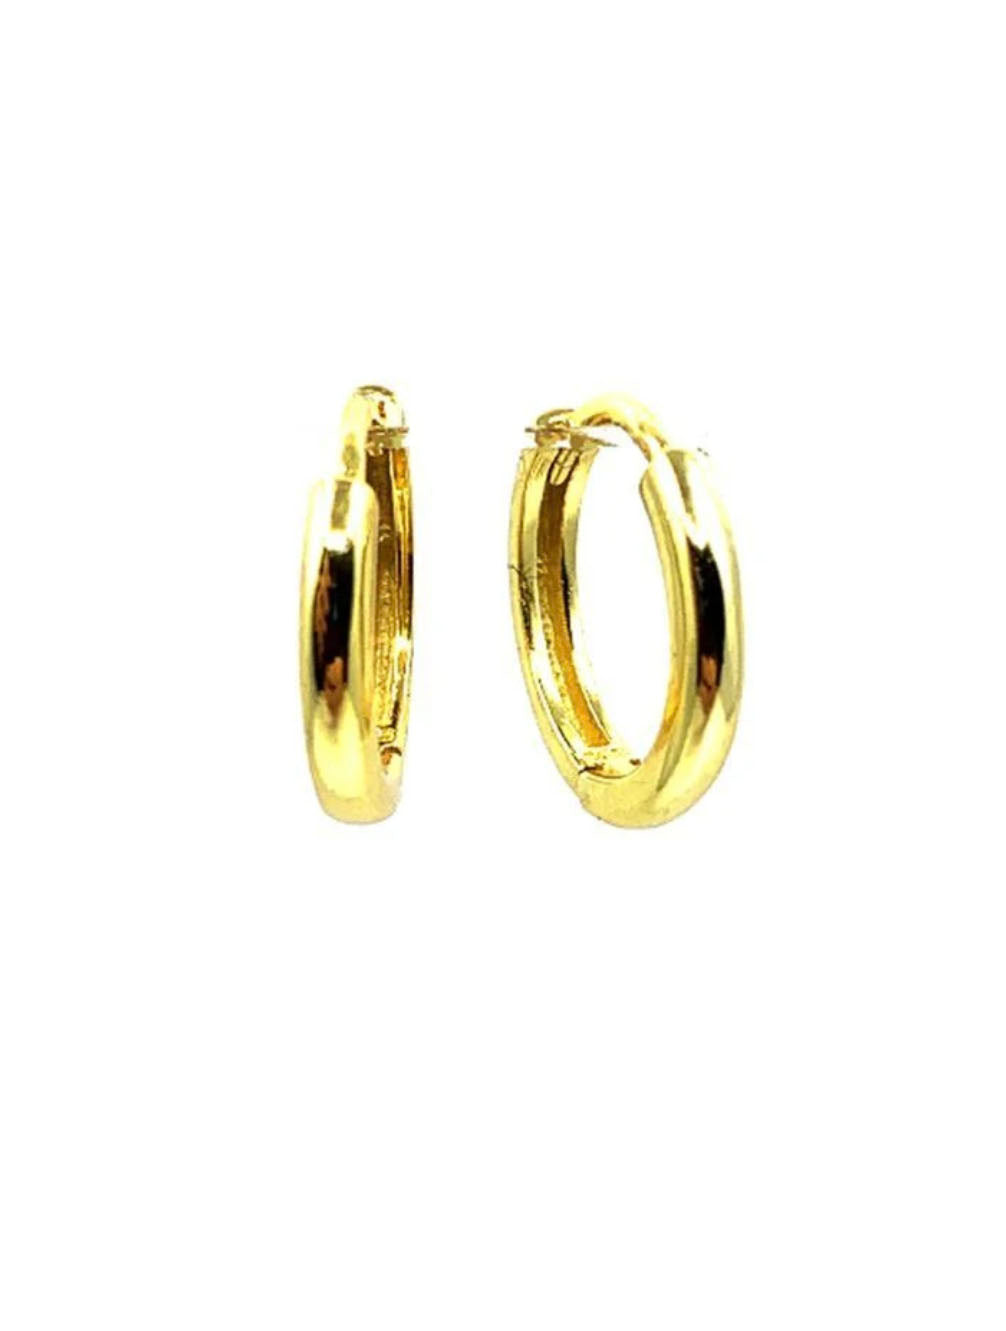 Athena Designs Small Huggie Hoops in Gold